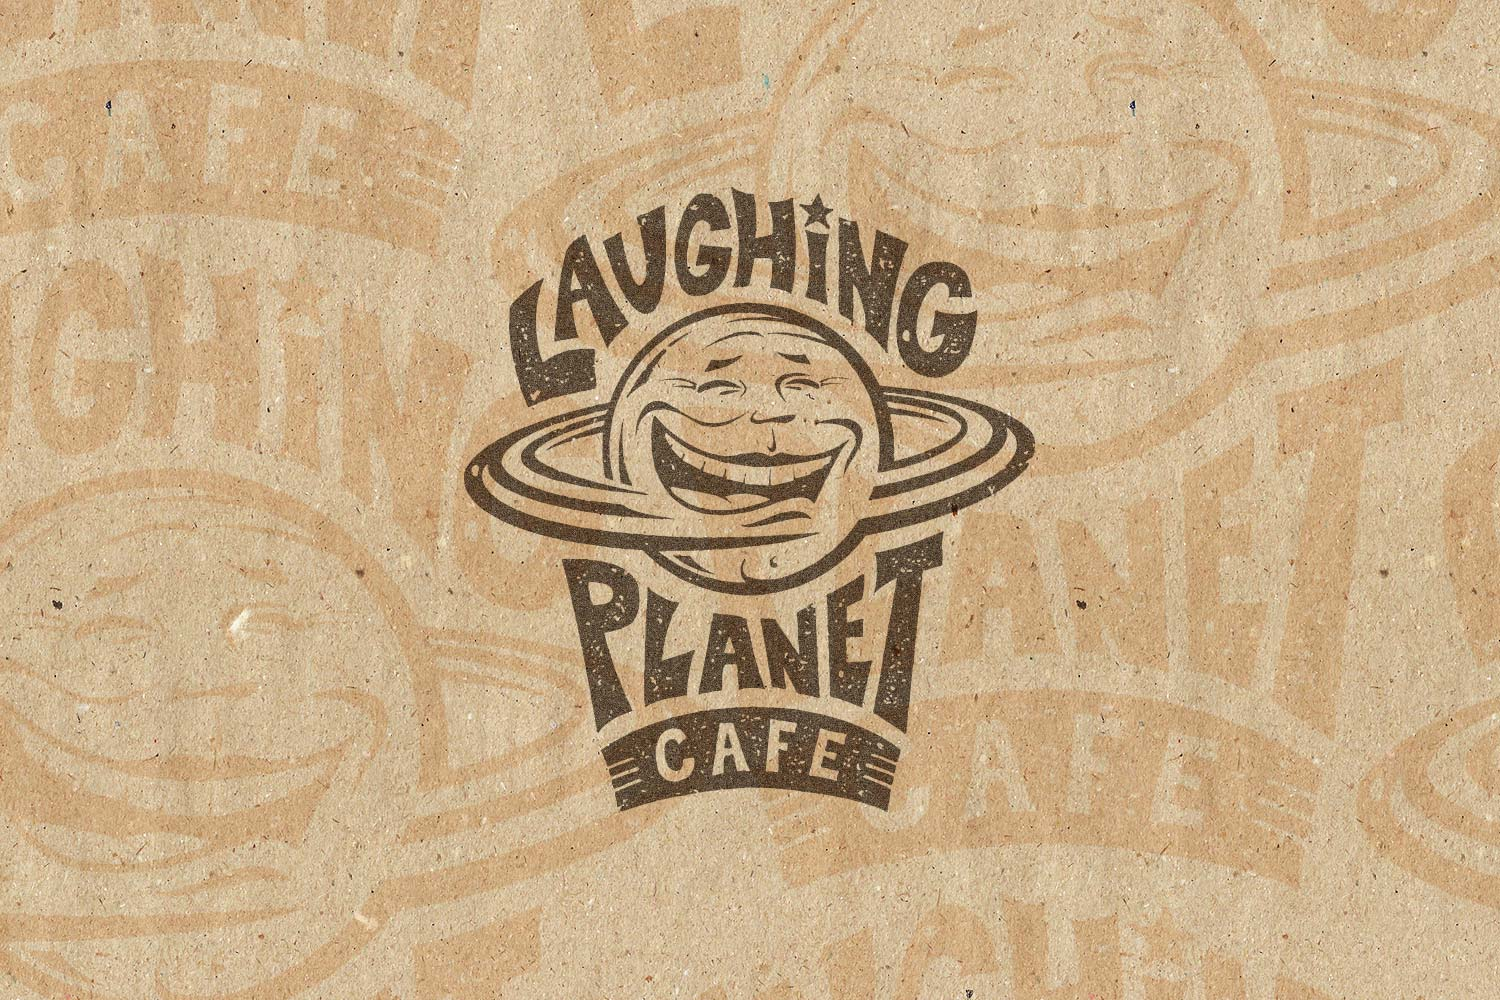 laughing-planet-logo-2.jpg